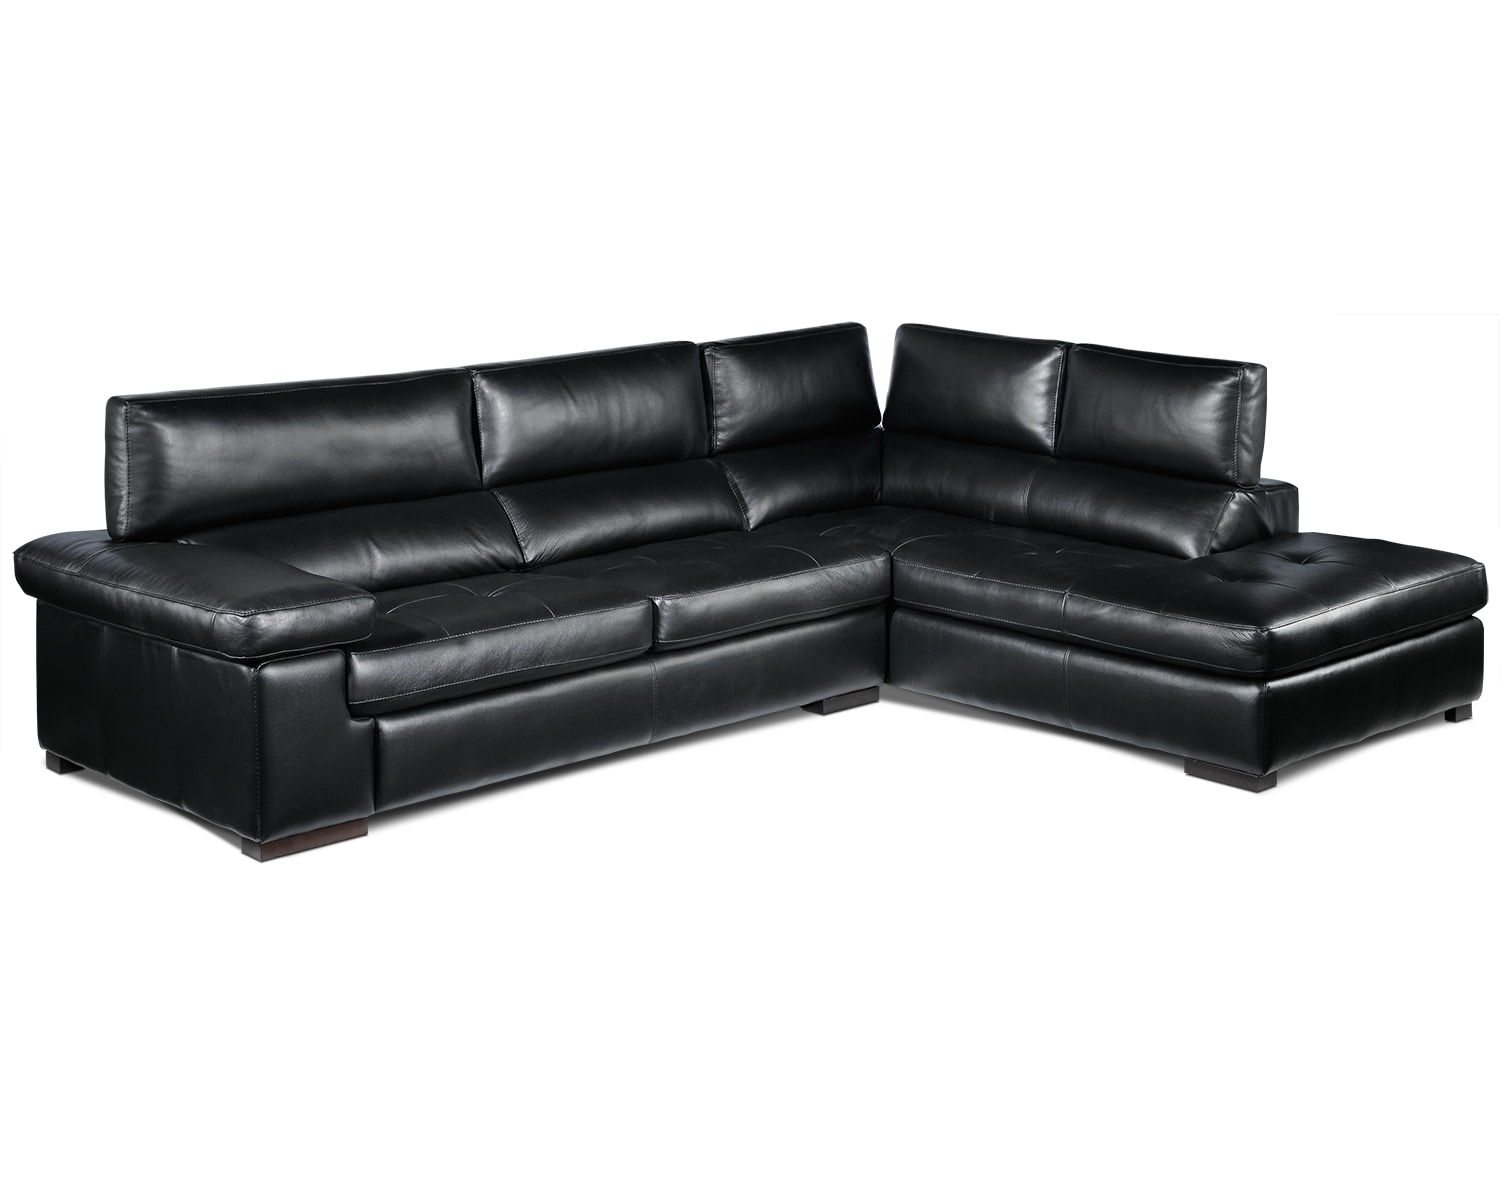 The Underwood Sectional Collection - Black